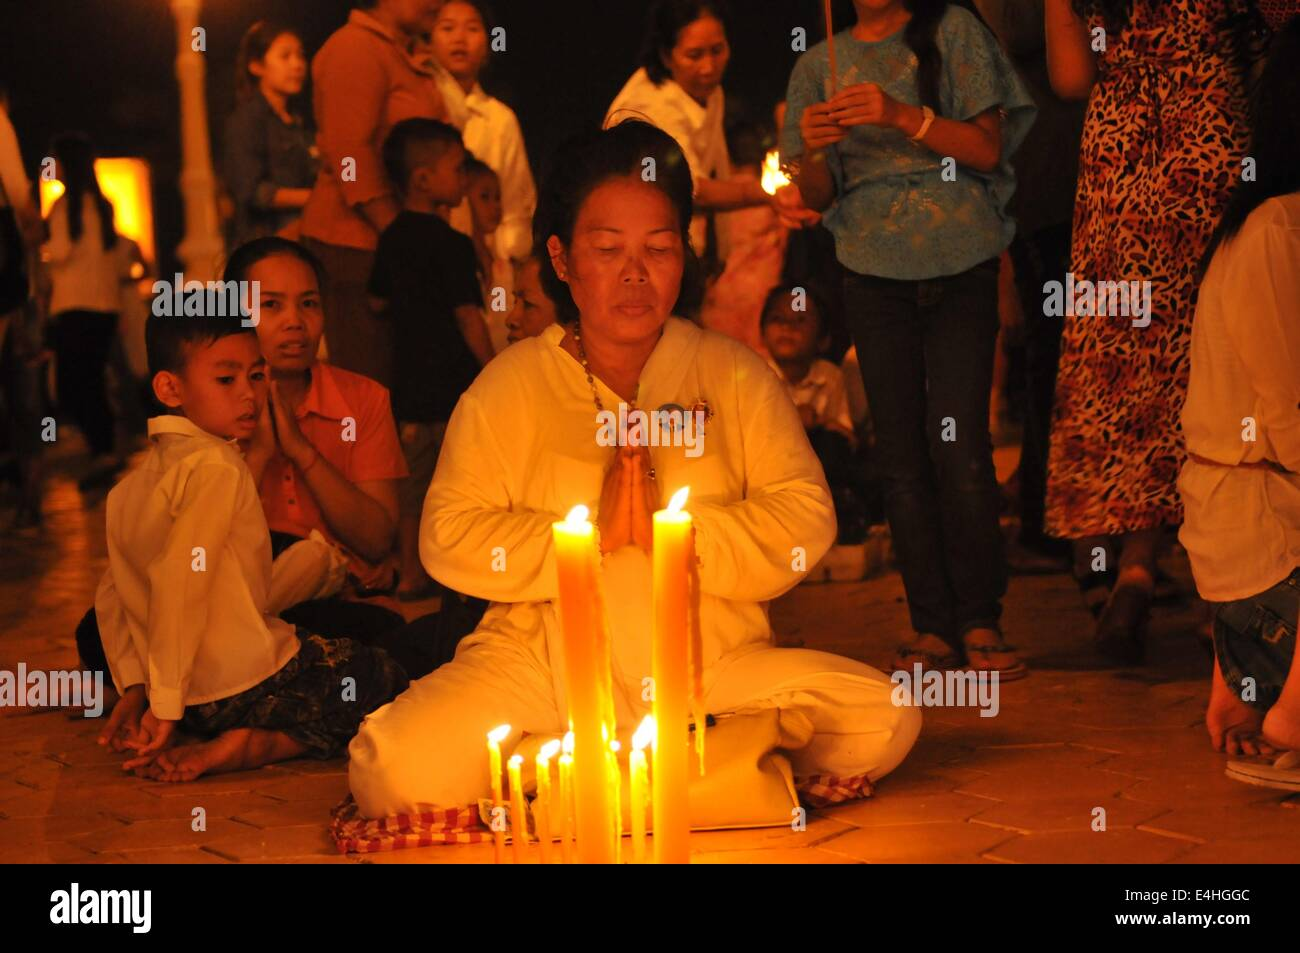 Phnom Penh, Cambodia. 11th July, 2014. People pray in front of the Royal Palace in Phnom Penh, Cambodia, July 11, - Stock Image